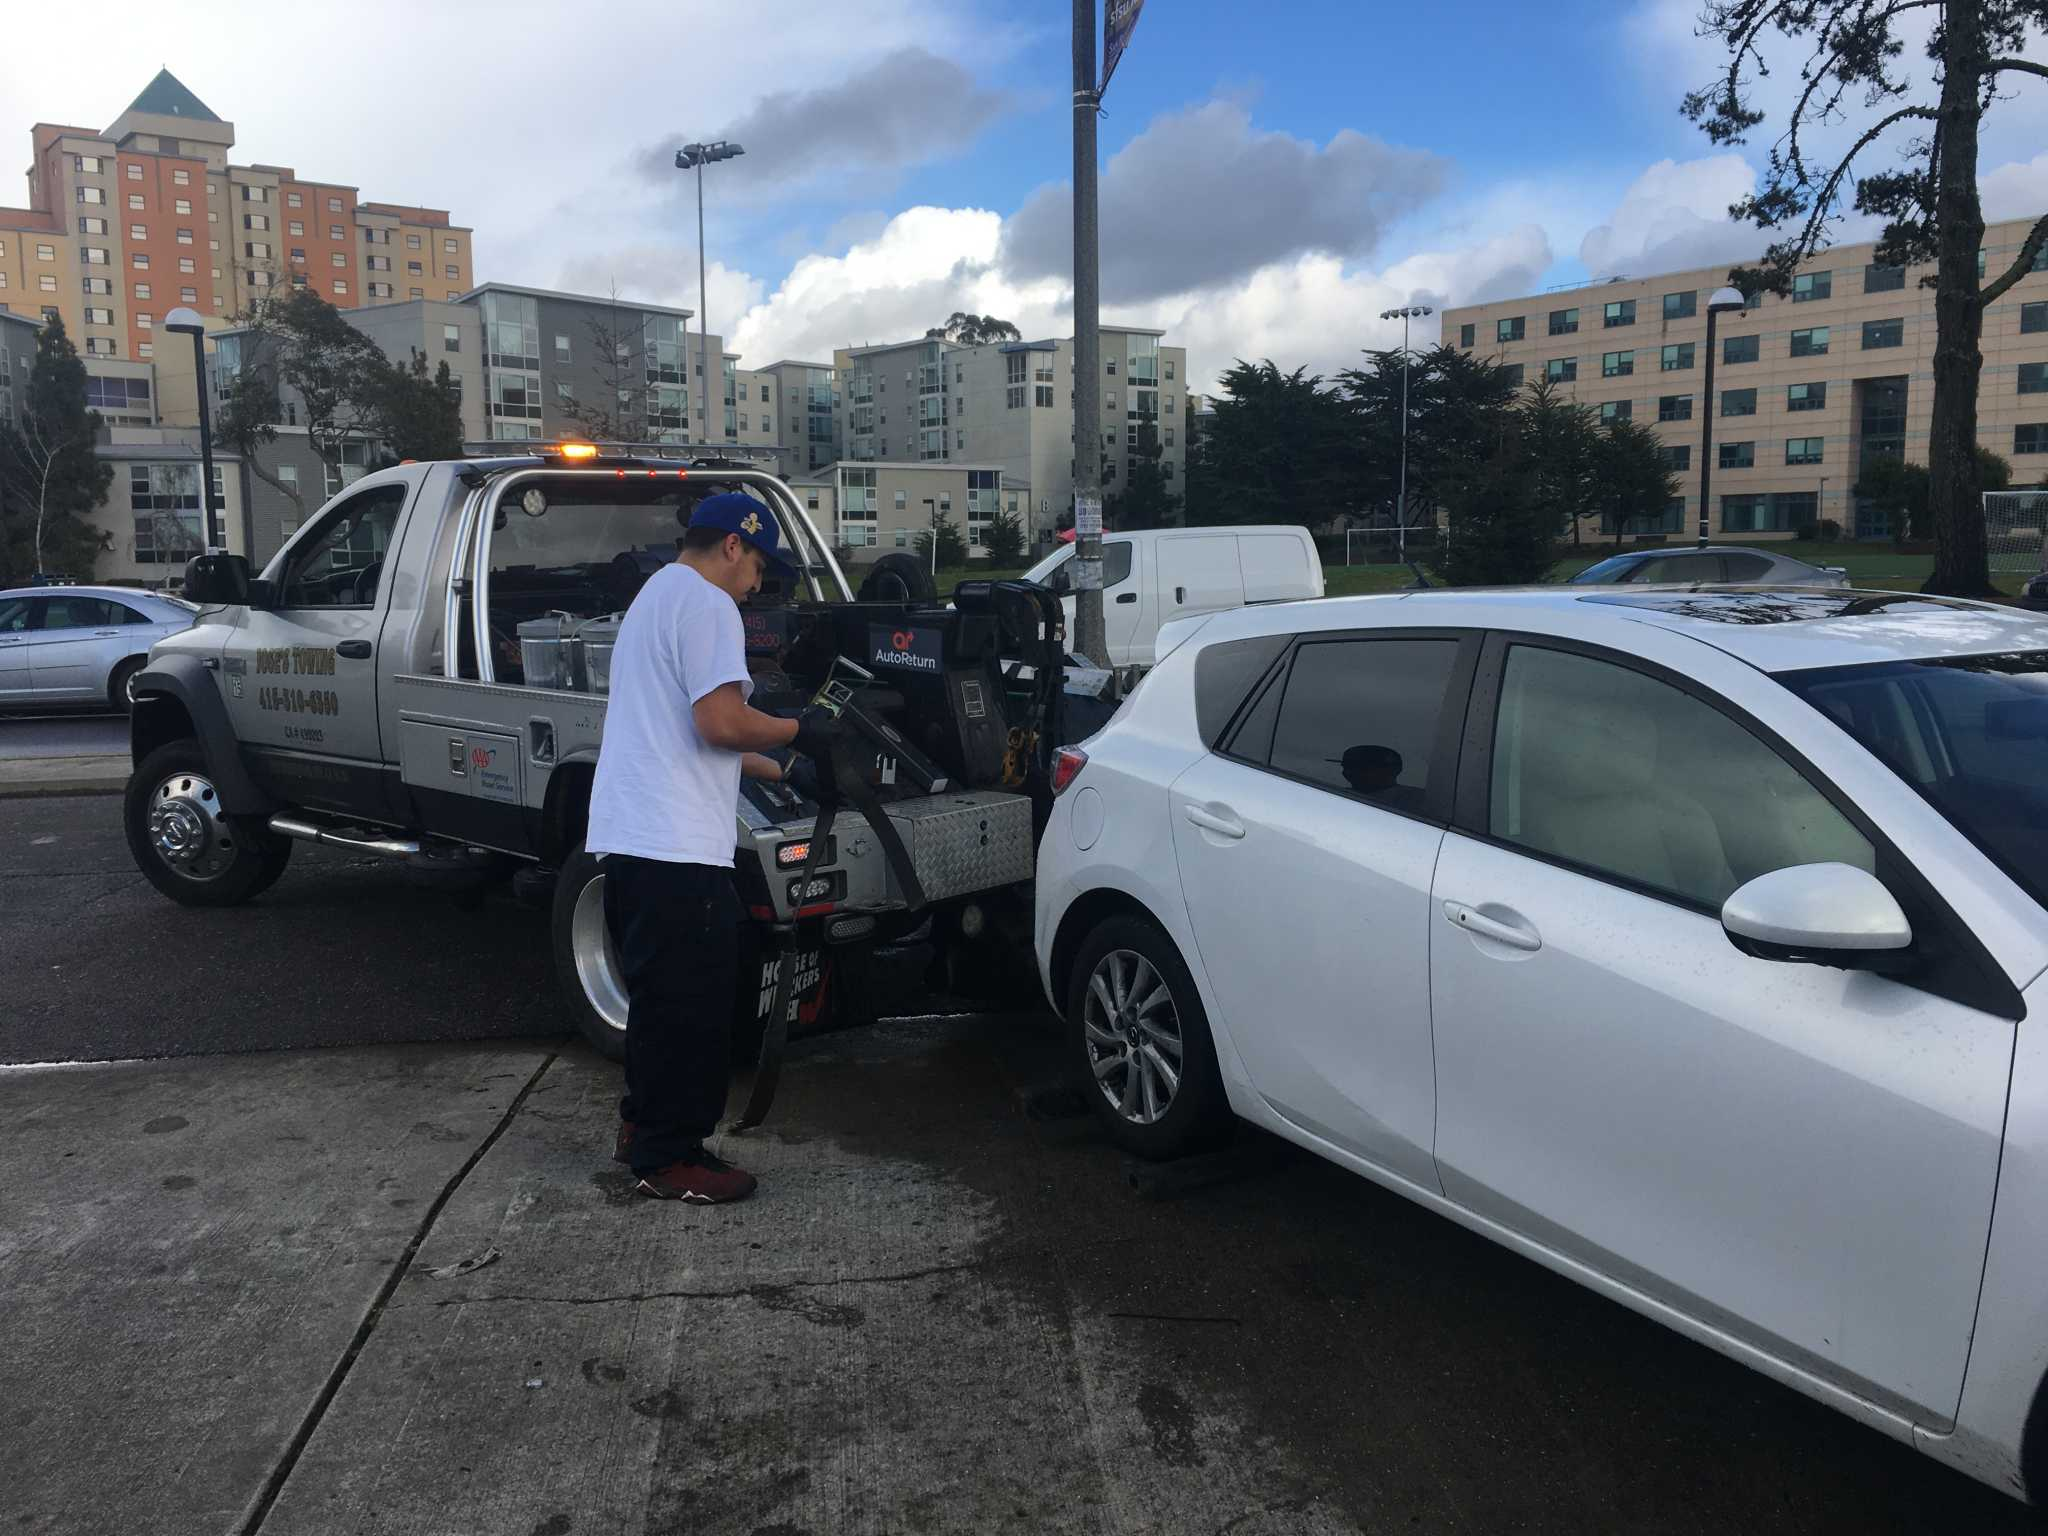 Student vehicles towed